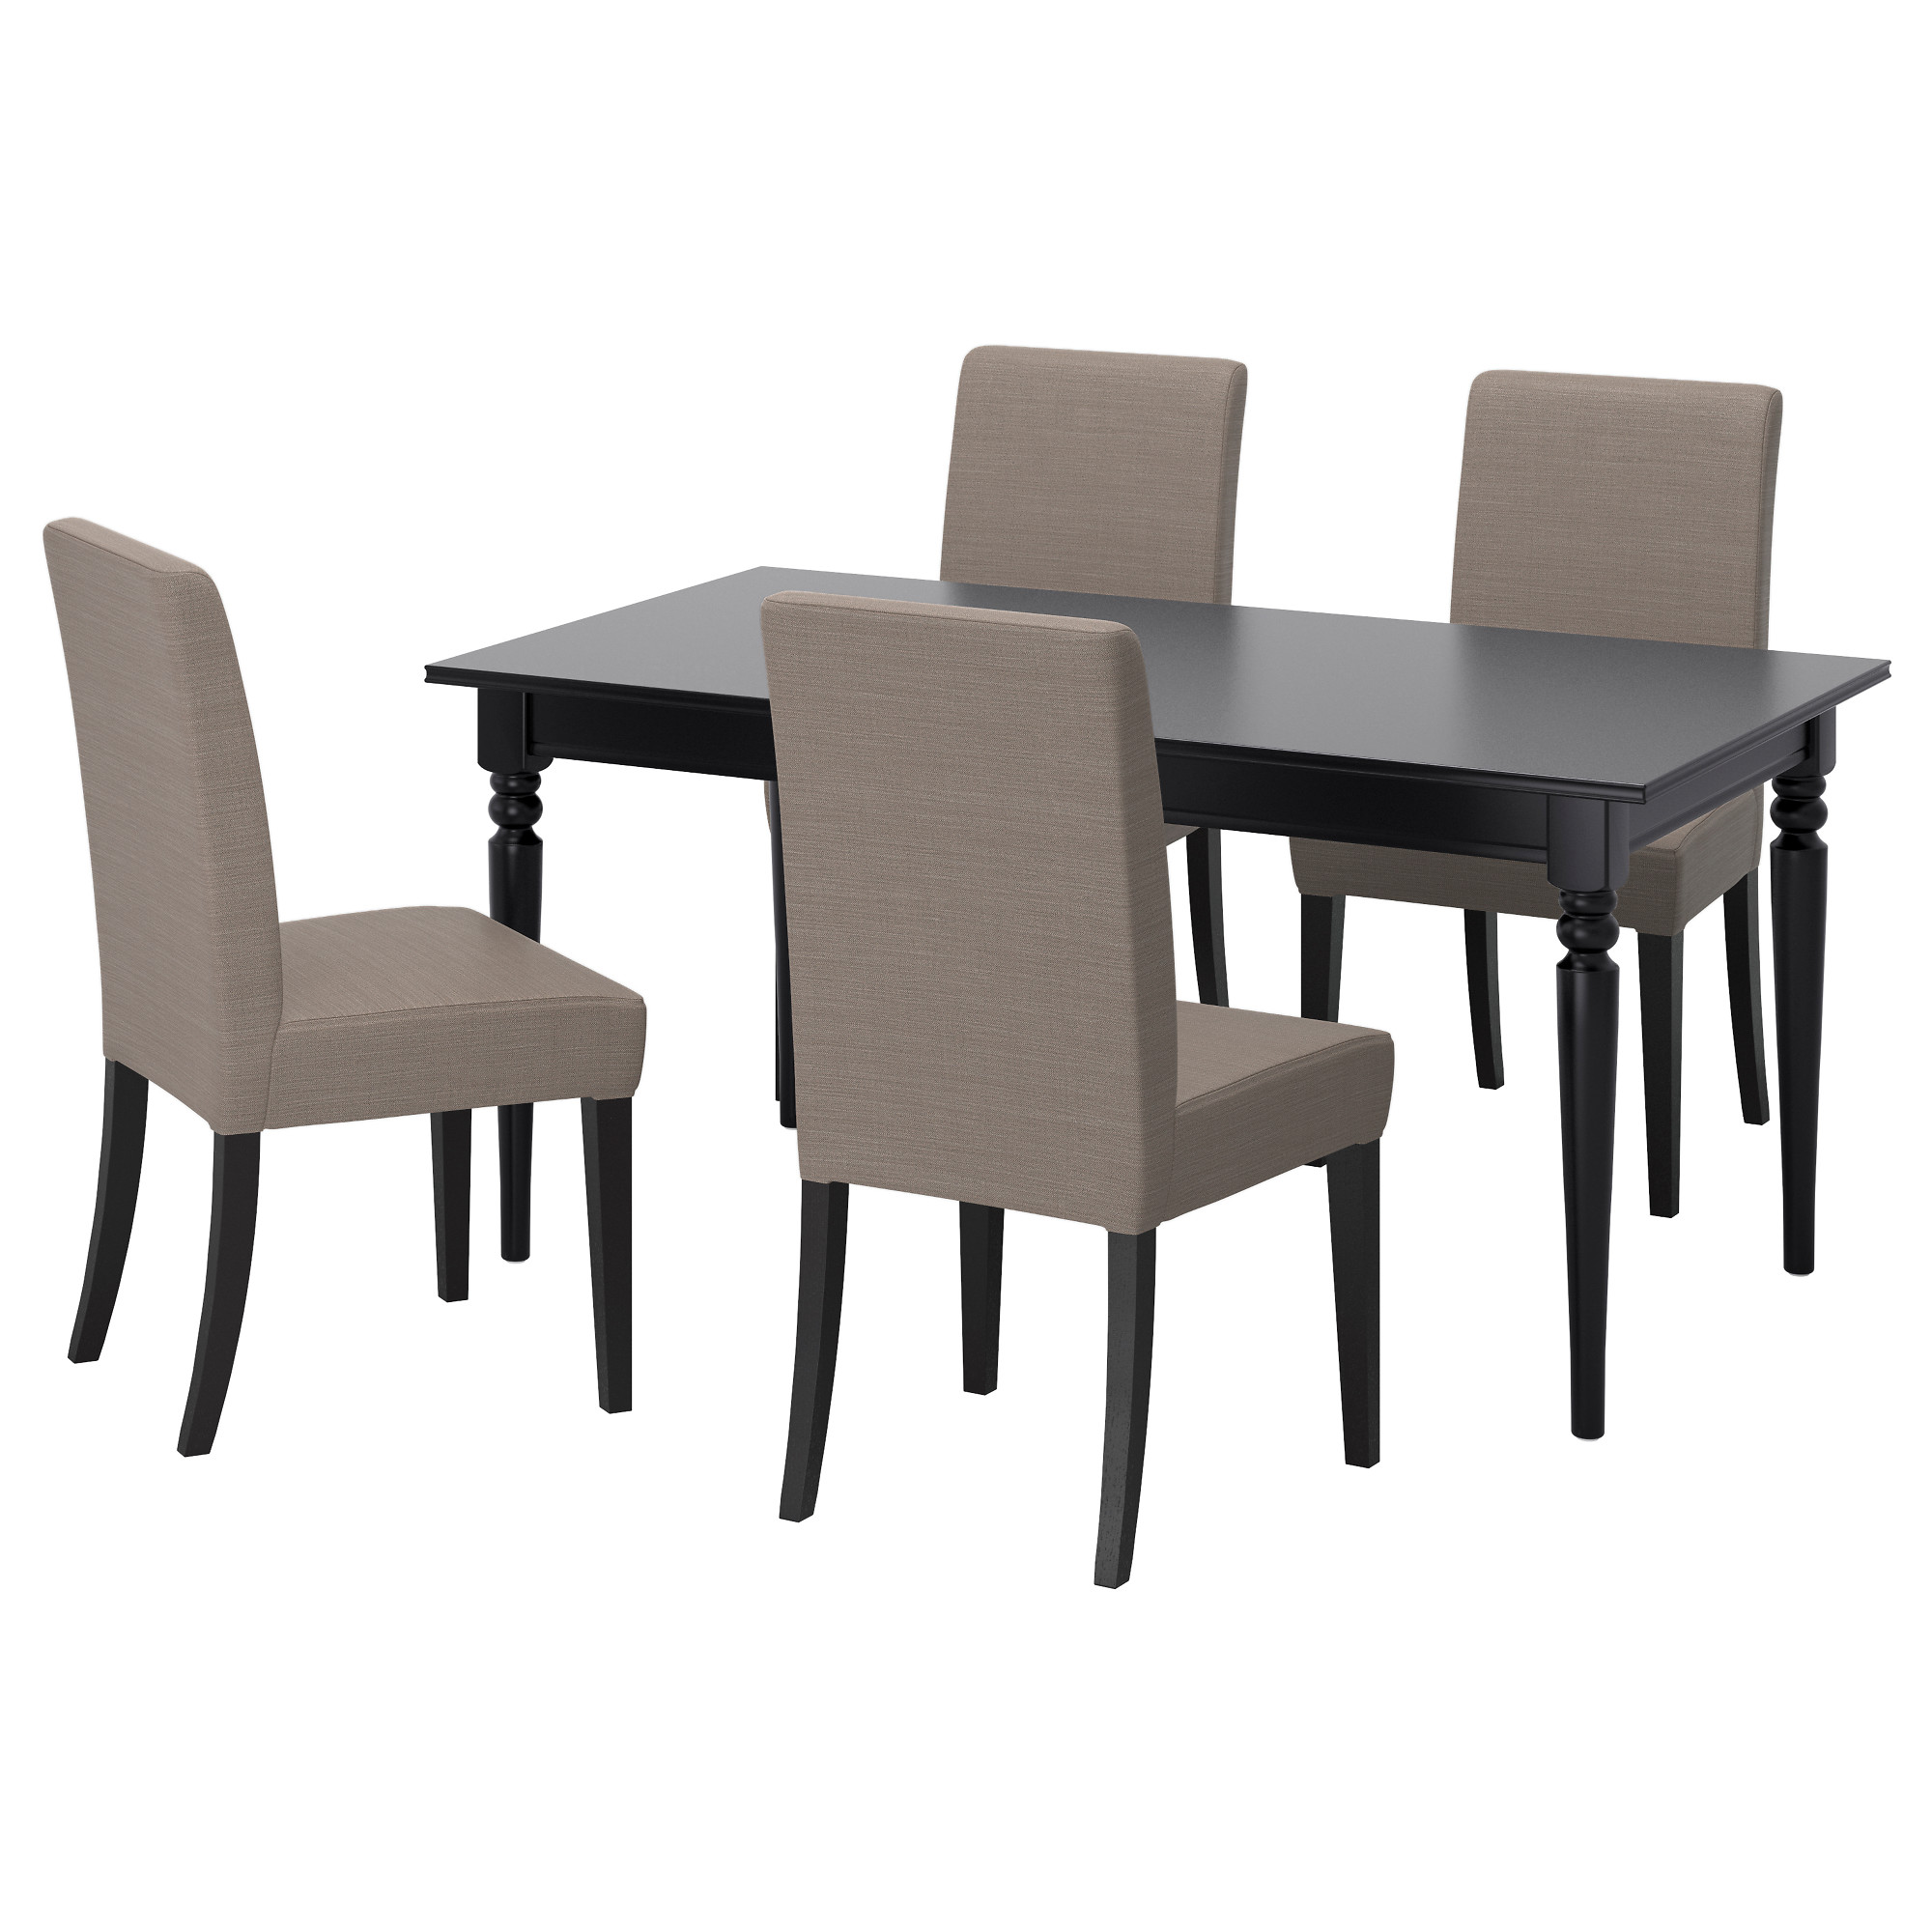 INGATORP HENRIKSDAL Table and 4 chairs IKEA